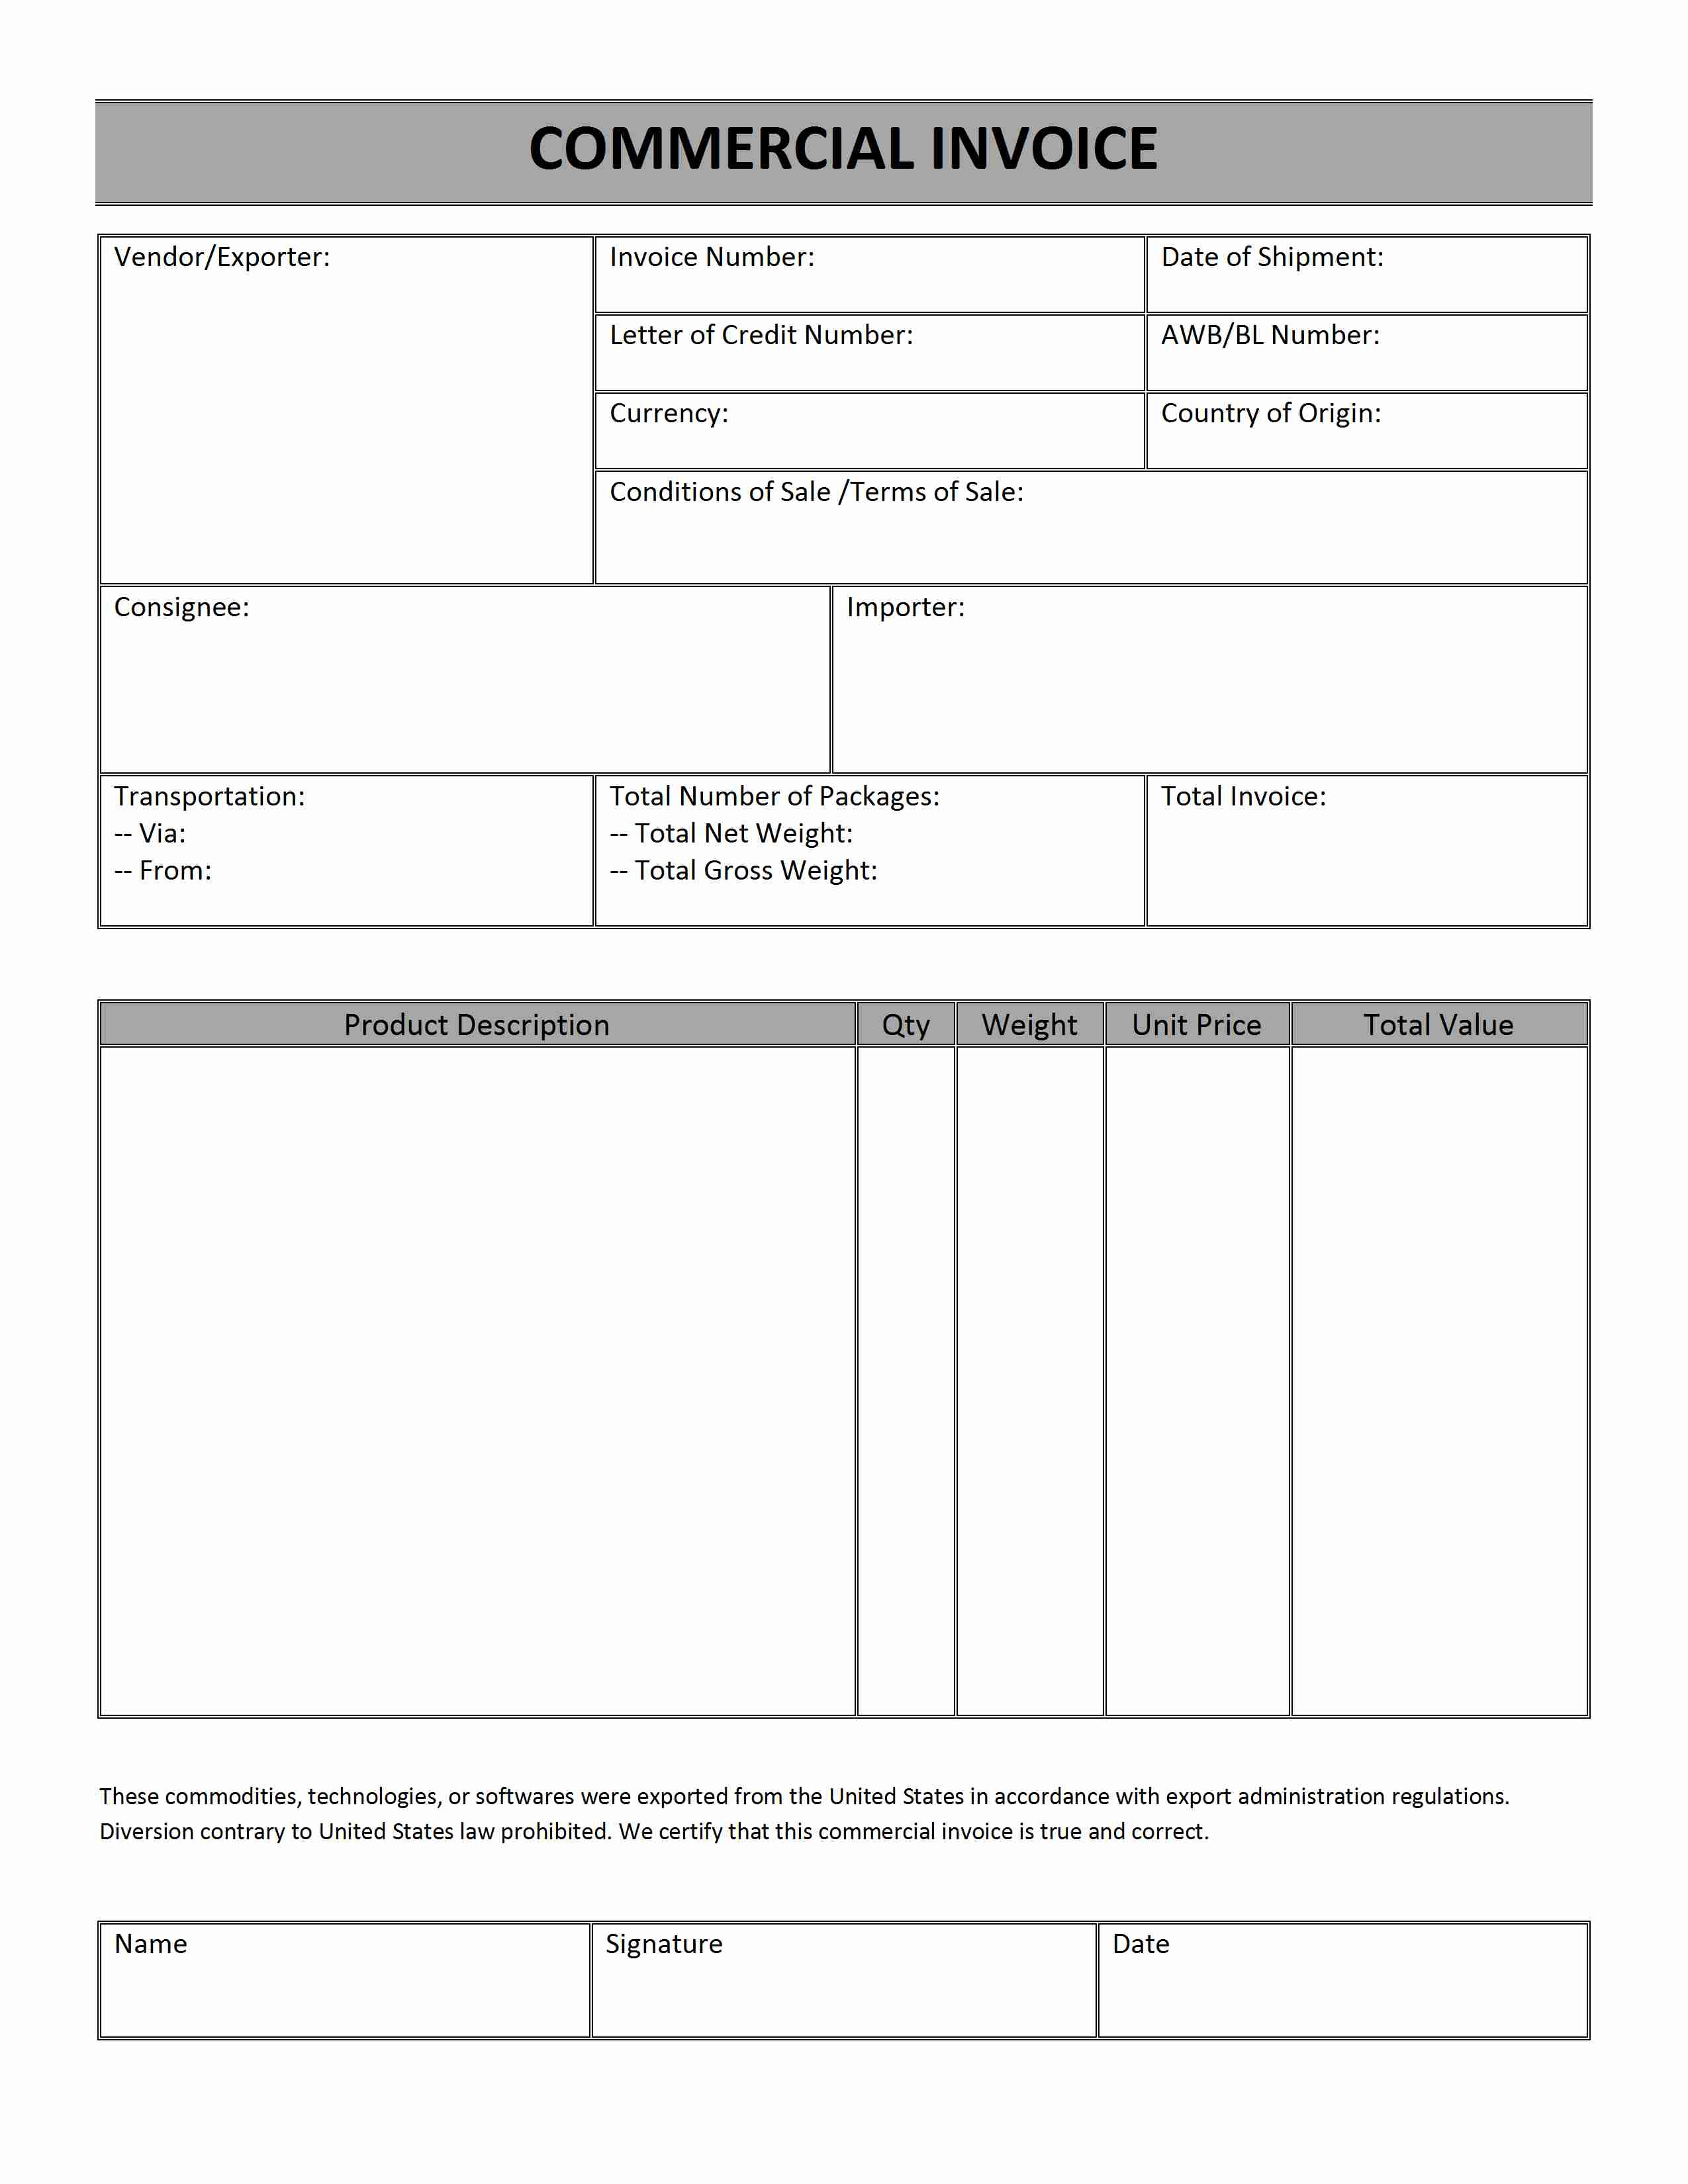 Helpingtohealus  Outstanding Printable Sales Invoice Simple Invoice Form Free Invoice  With Gorgeous Printable Receipt Free  Free Printable Raffle Tickets  Receipt   Printable With Beautiful Invoice Template Xls Also Free Hvac Invoice Template In Addition Tax Invoice Definition And Labcorp Invoice As Well As What Is Invoice Financing Additionally Invoice Price Of A Bond From Happytomco With Helpingtohealus  Gorgeous Printable Sales Invoice Simple Invoice Form Free Invoice  With Beautiful Printable Receipt Free  Free Printable Raffle Tickets  Receipt   Printable And Outstanding Invoice Template Xls Also Free Hvac Invoice Template In Addition Tax Invoice Definition From Happytomco